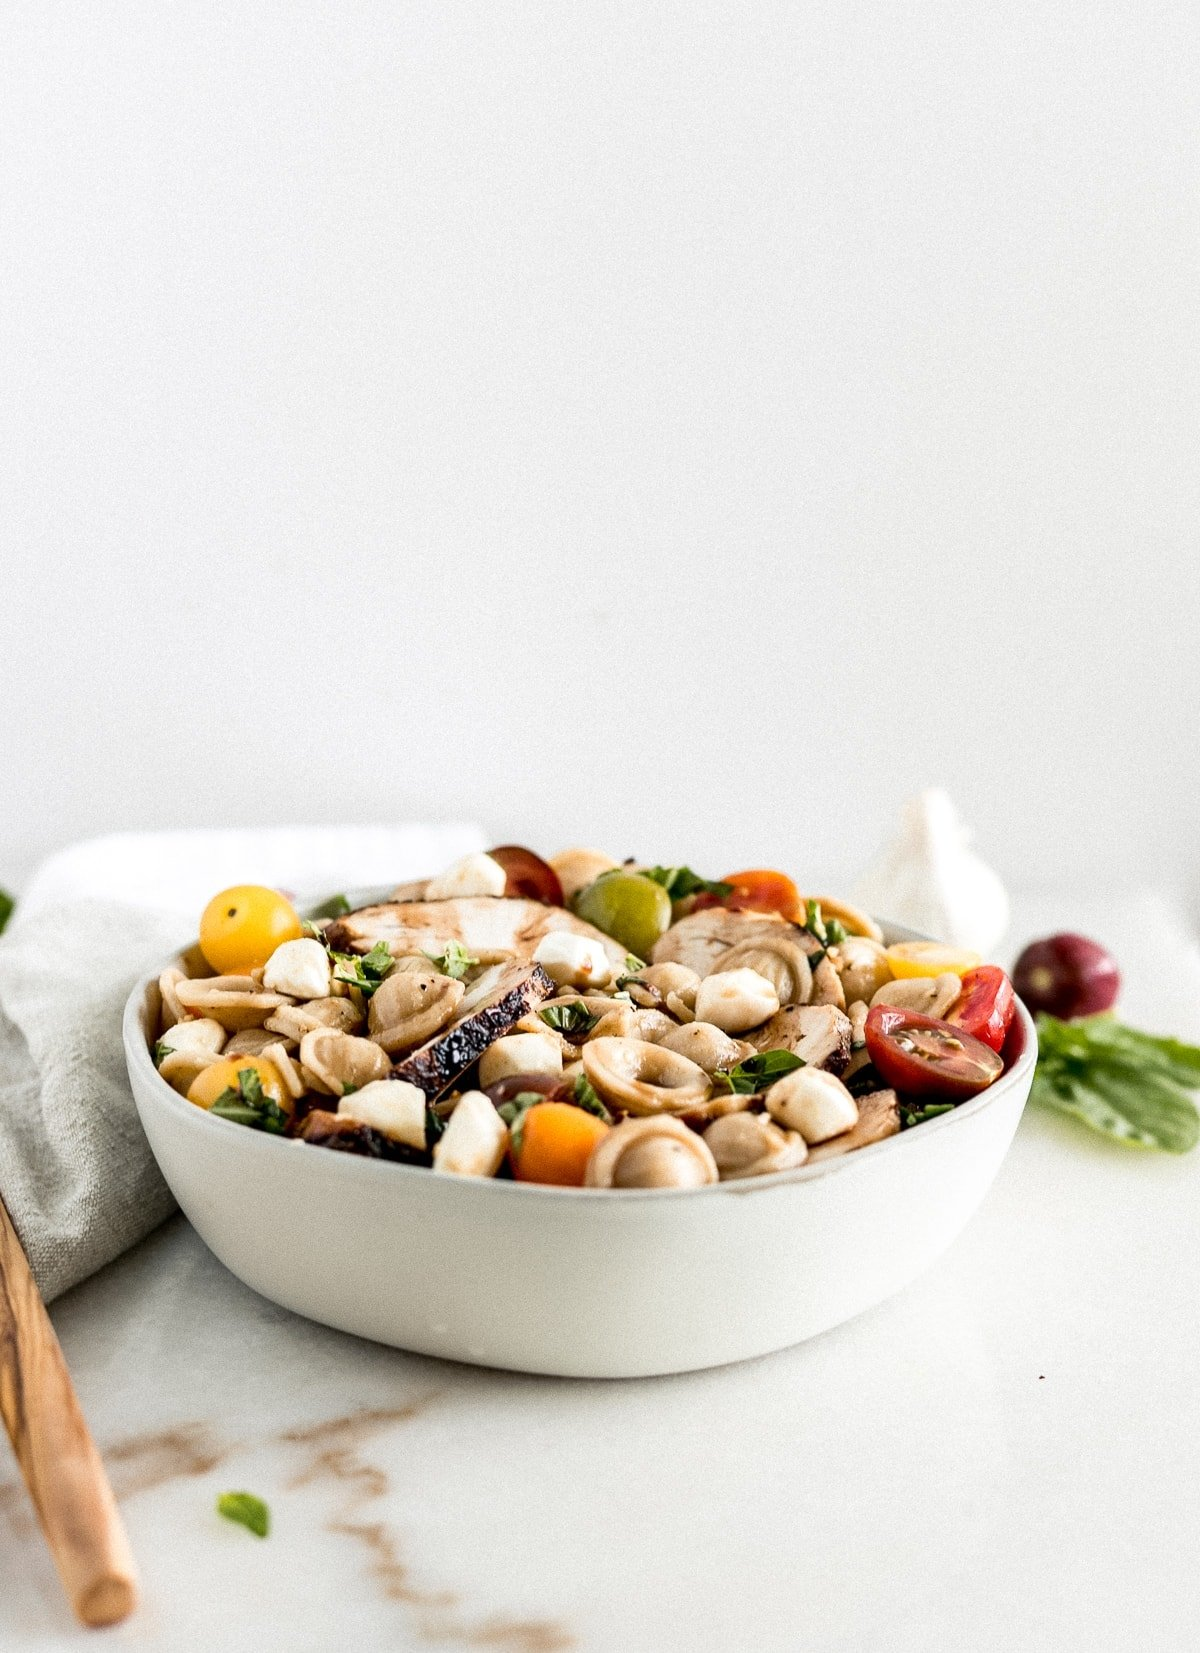 This Chicken Caprese Pasta Salad is a delicious and healthy pasta salad made with tomatoes, basil, mozzarella and whole grain pasta that makes the perfect summer lunch or potluck dish! (gluten-free and vegetarian option) | via livelytable.com